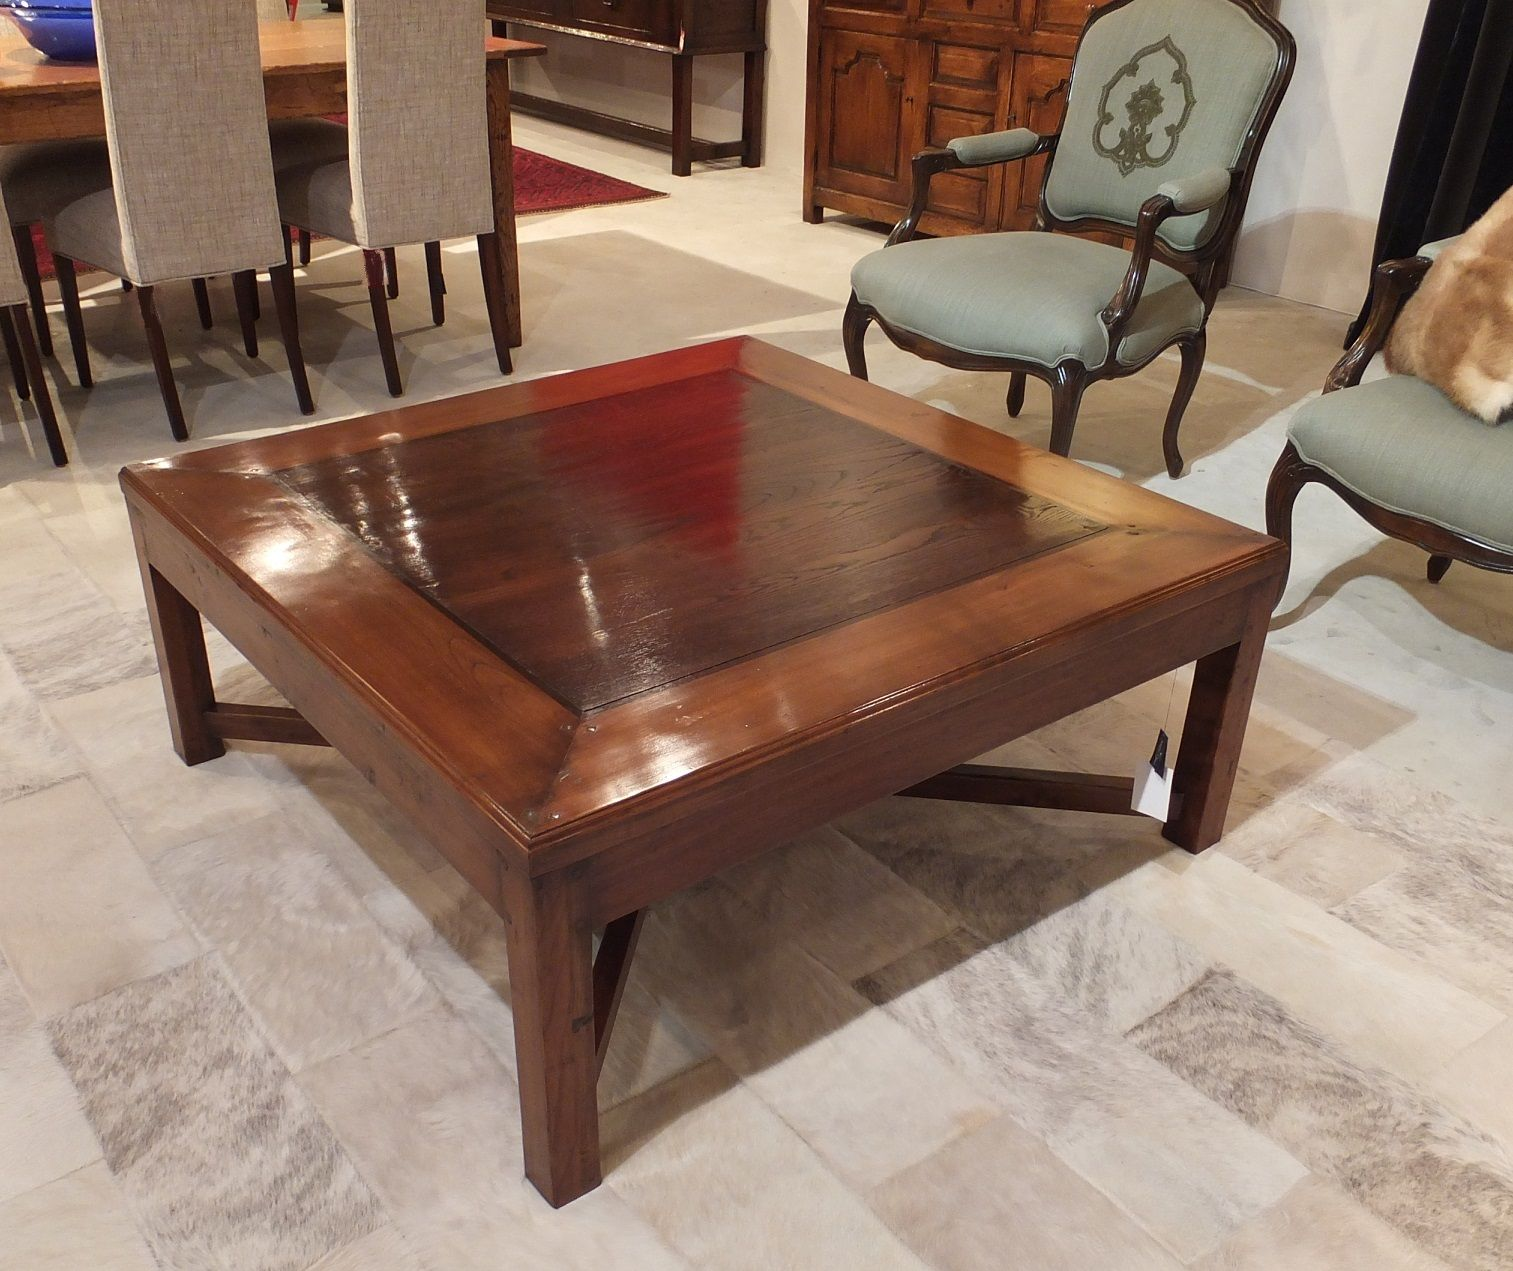 Merveilleux Beaumont Coffee Table   Cherry Wood Frame   French Oak Centre